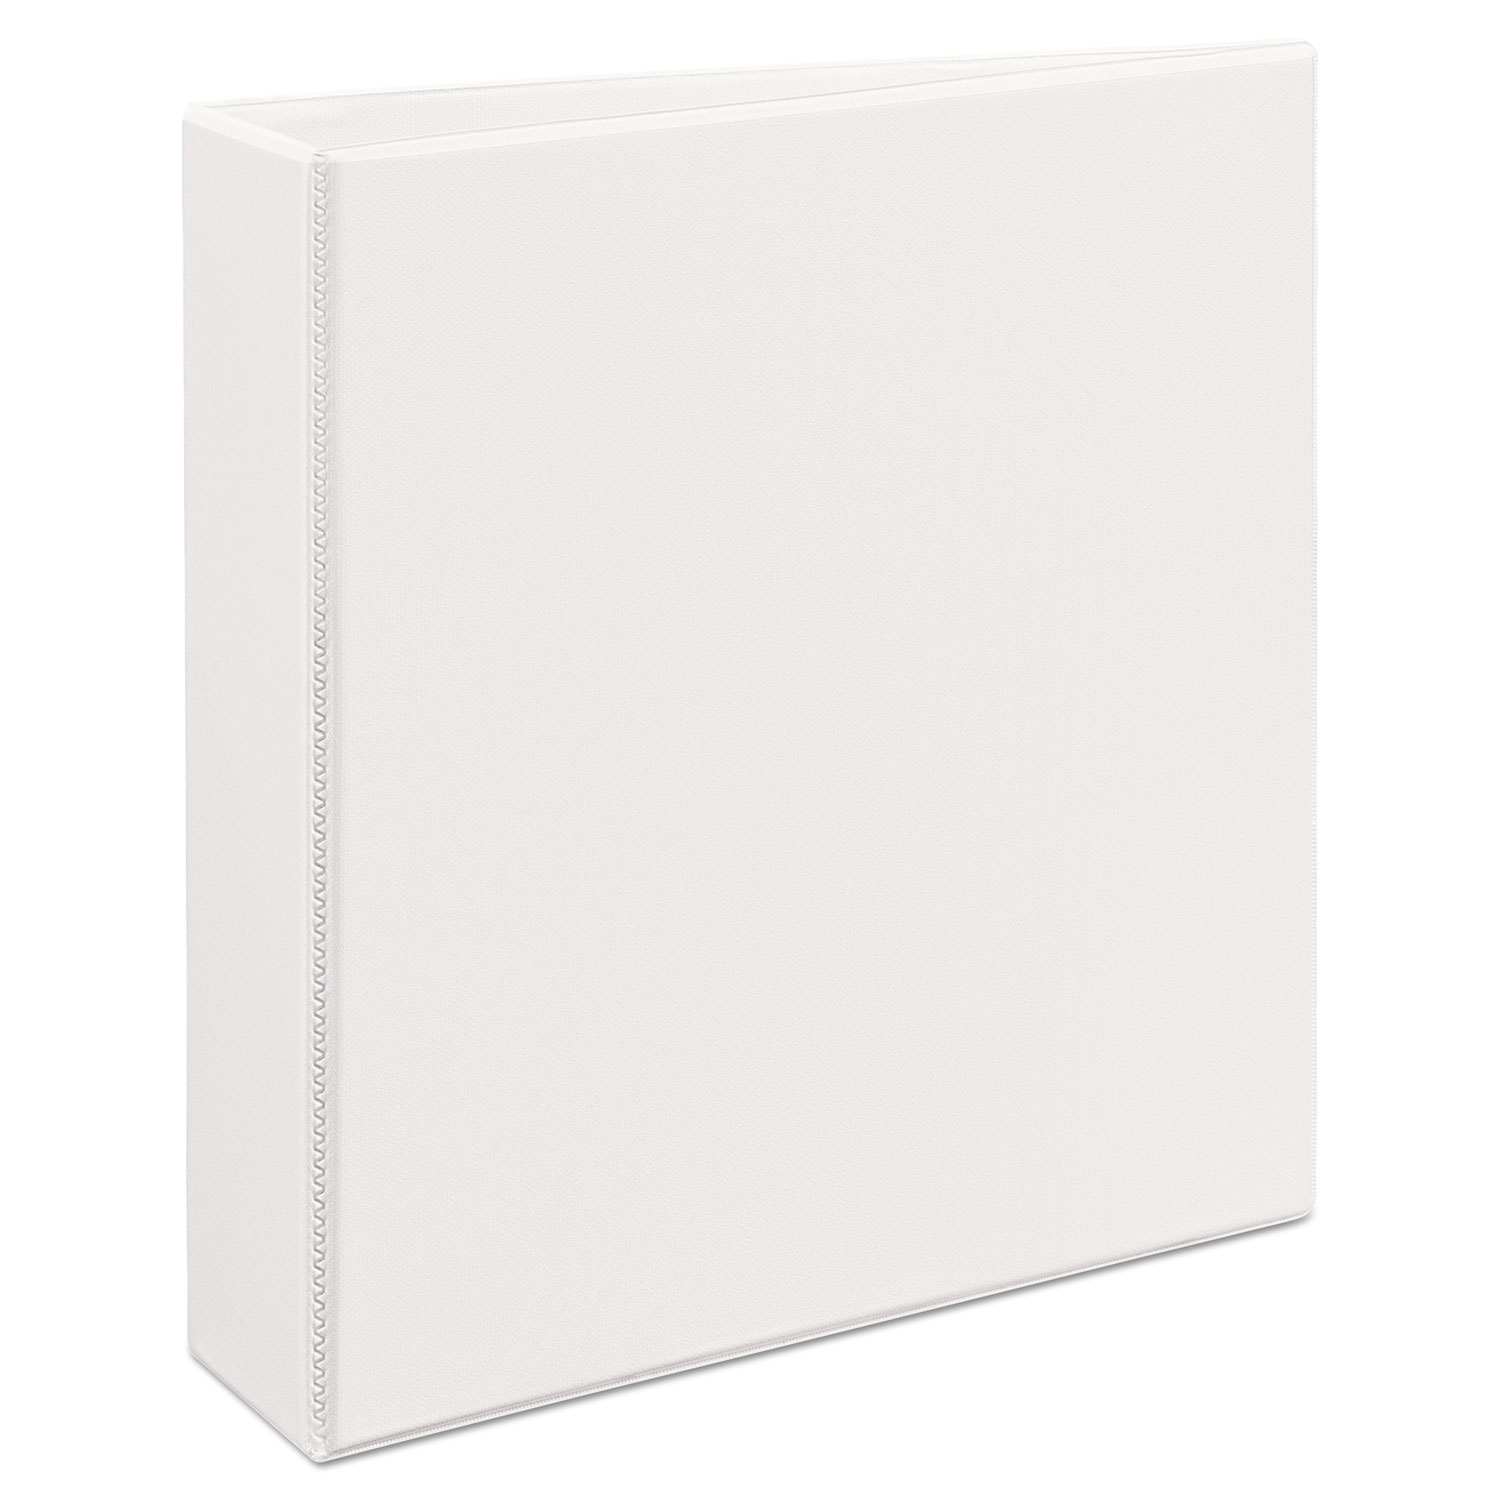 """Heavy-Duty View Binder with DuraHinge and One Touch EZD Rings, 3 Rings, 2"""" Capacity, 11 x 8.5, White"""